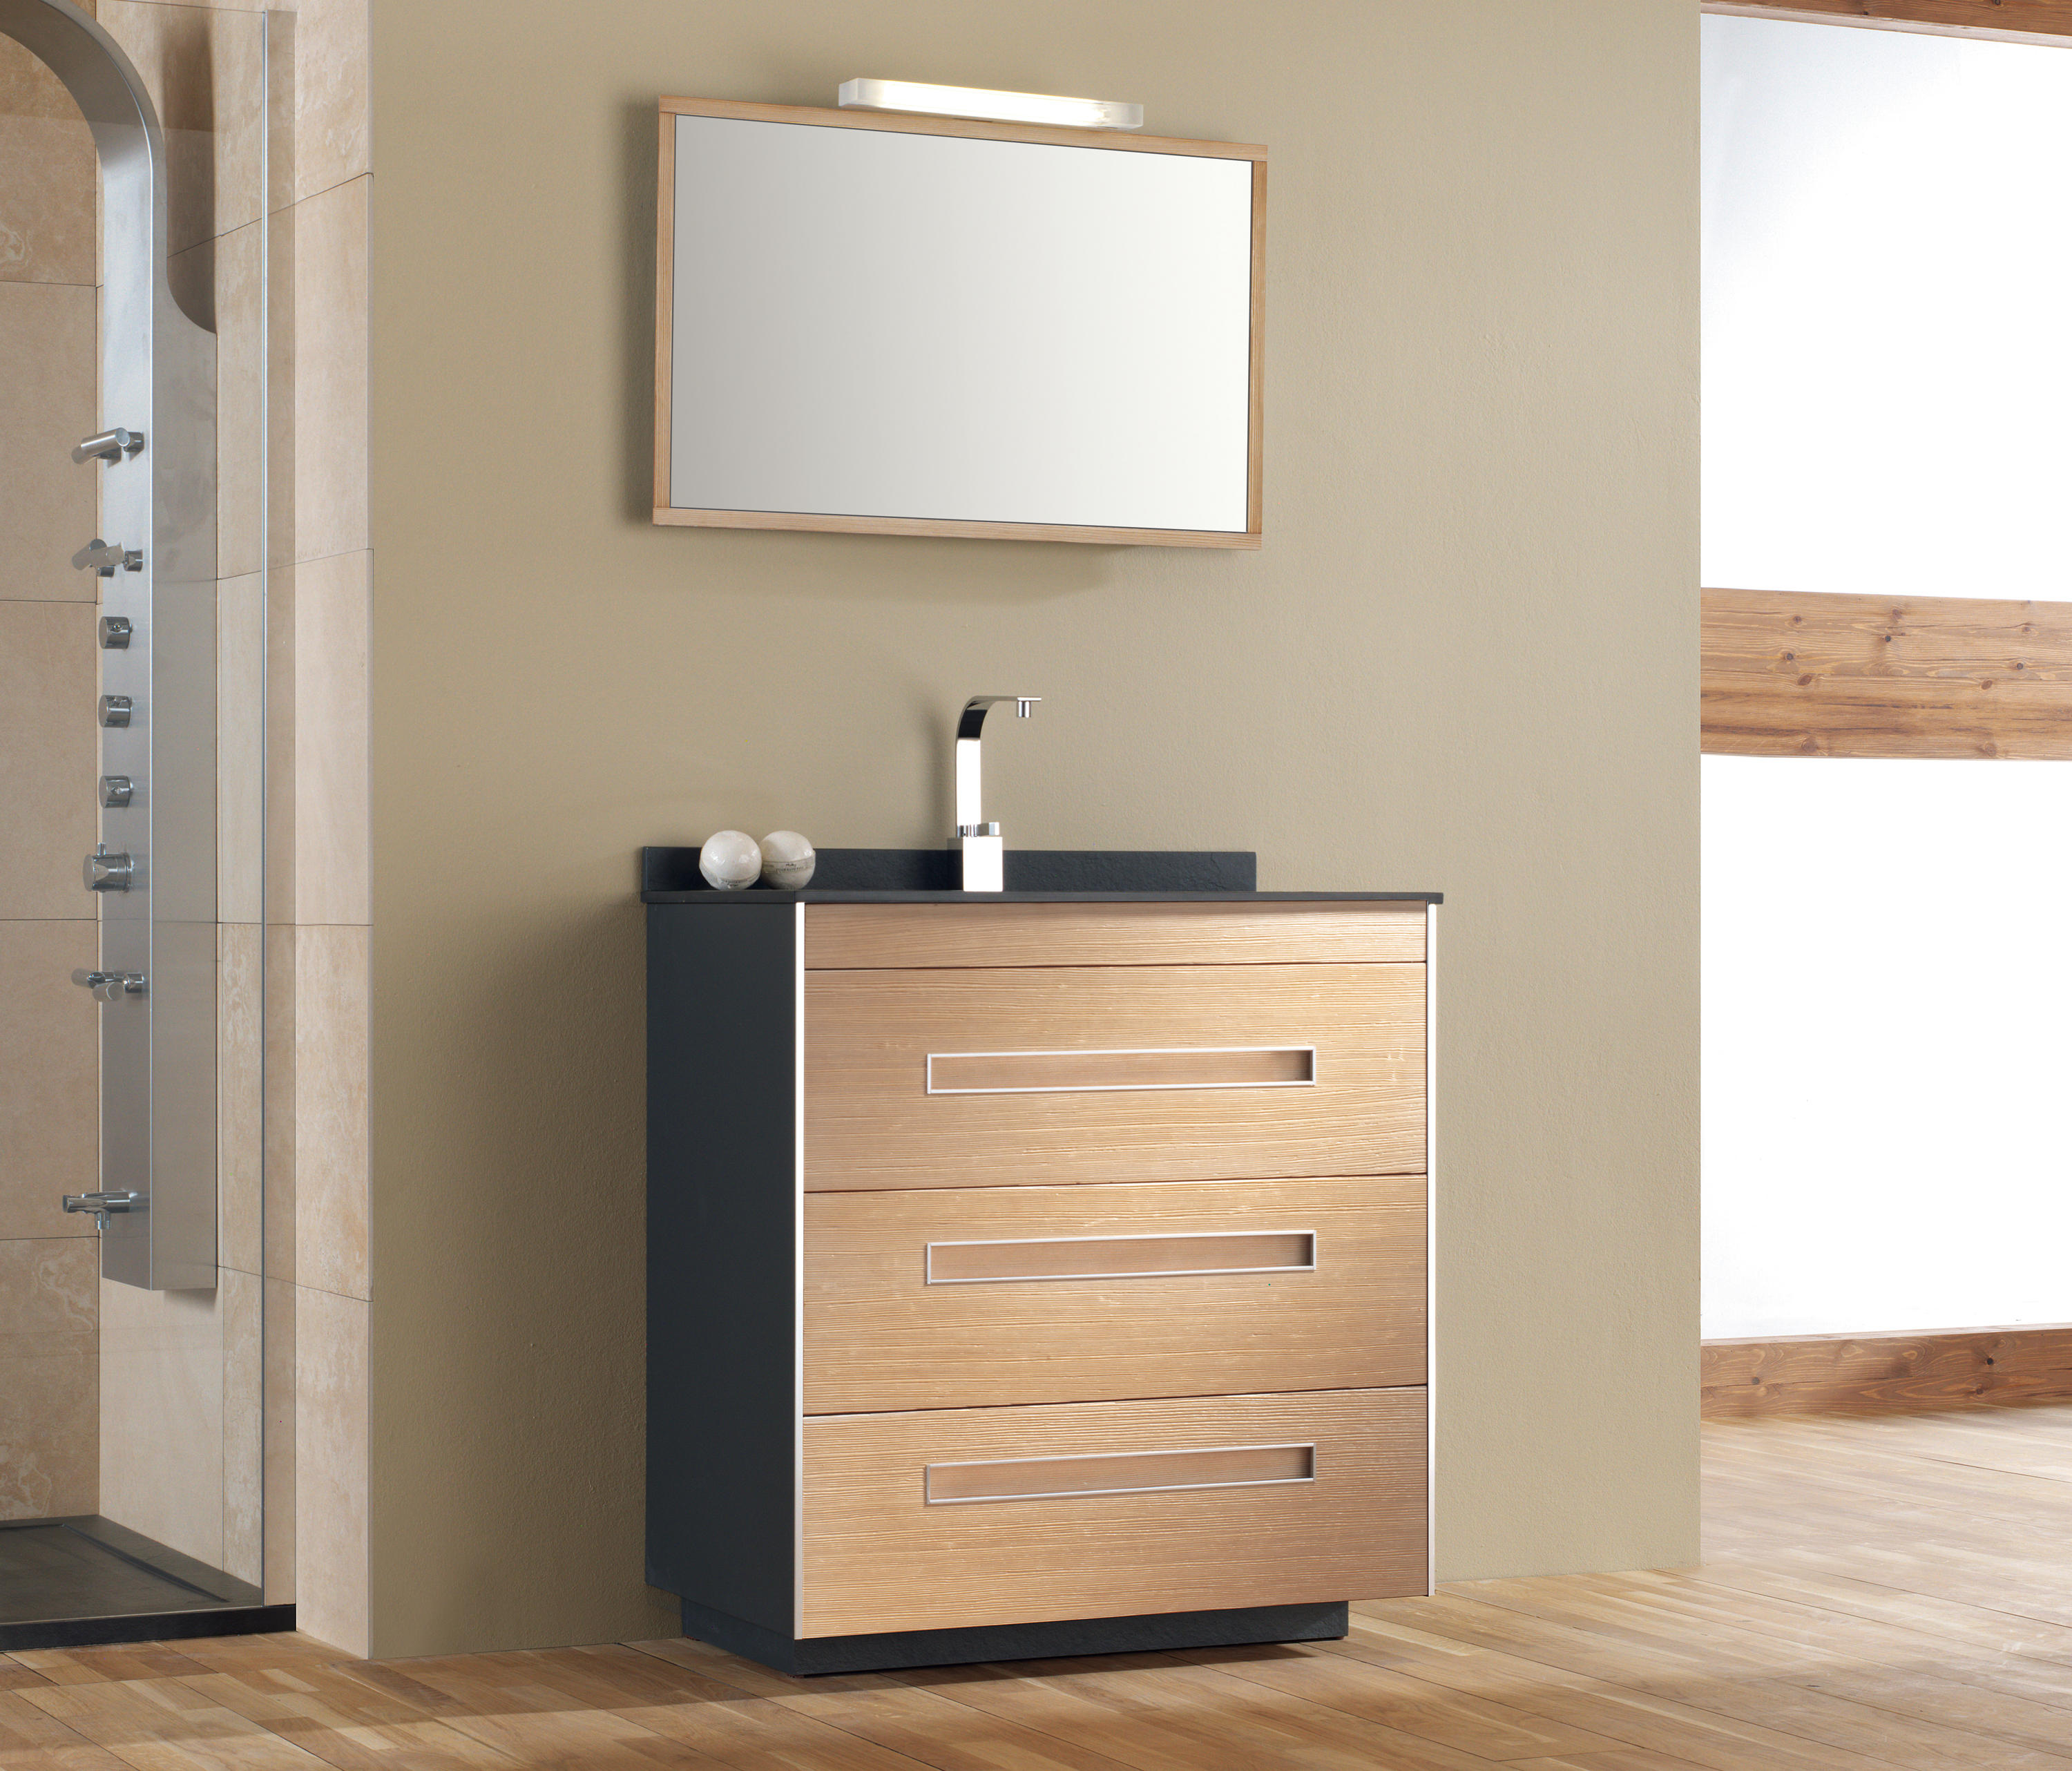 COLORS PINE BEECH - Vanity units from FIORA | Architonic